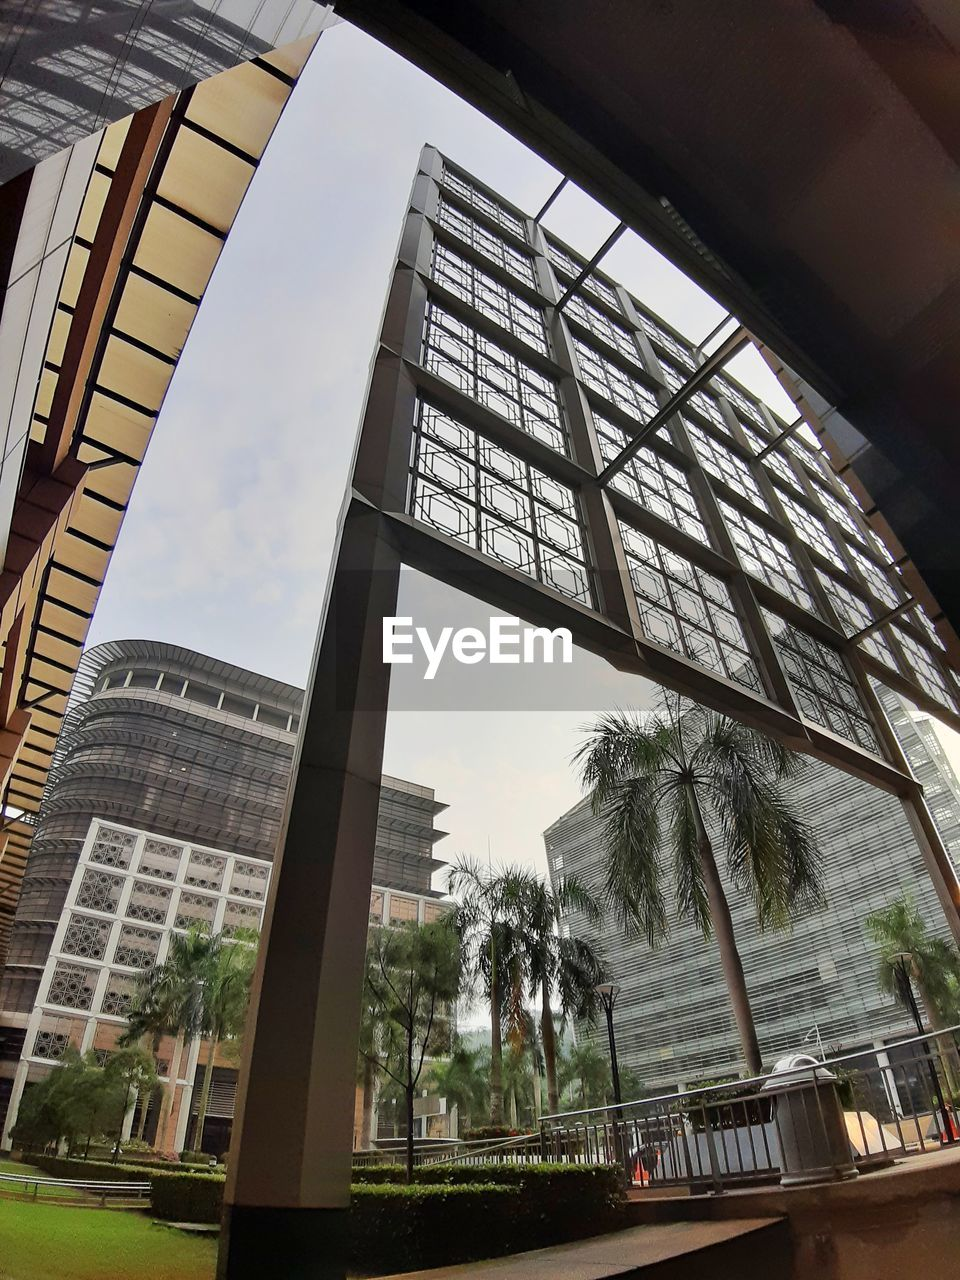 built structure, architecture, building exterior, sky, low angle view, building, day, glass - material, tree, city, palm tree, no people, nature, plant, outdoors, tropical climate, tall - high, window, travel destinations, office building exterior, skyscraper